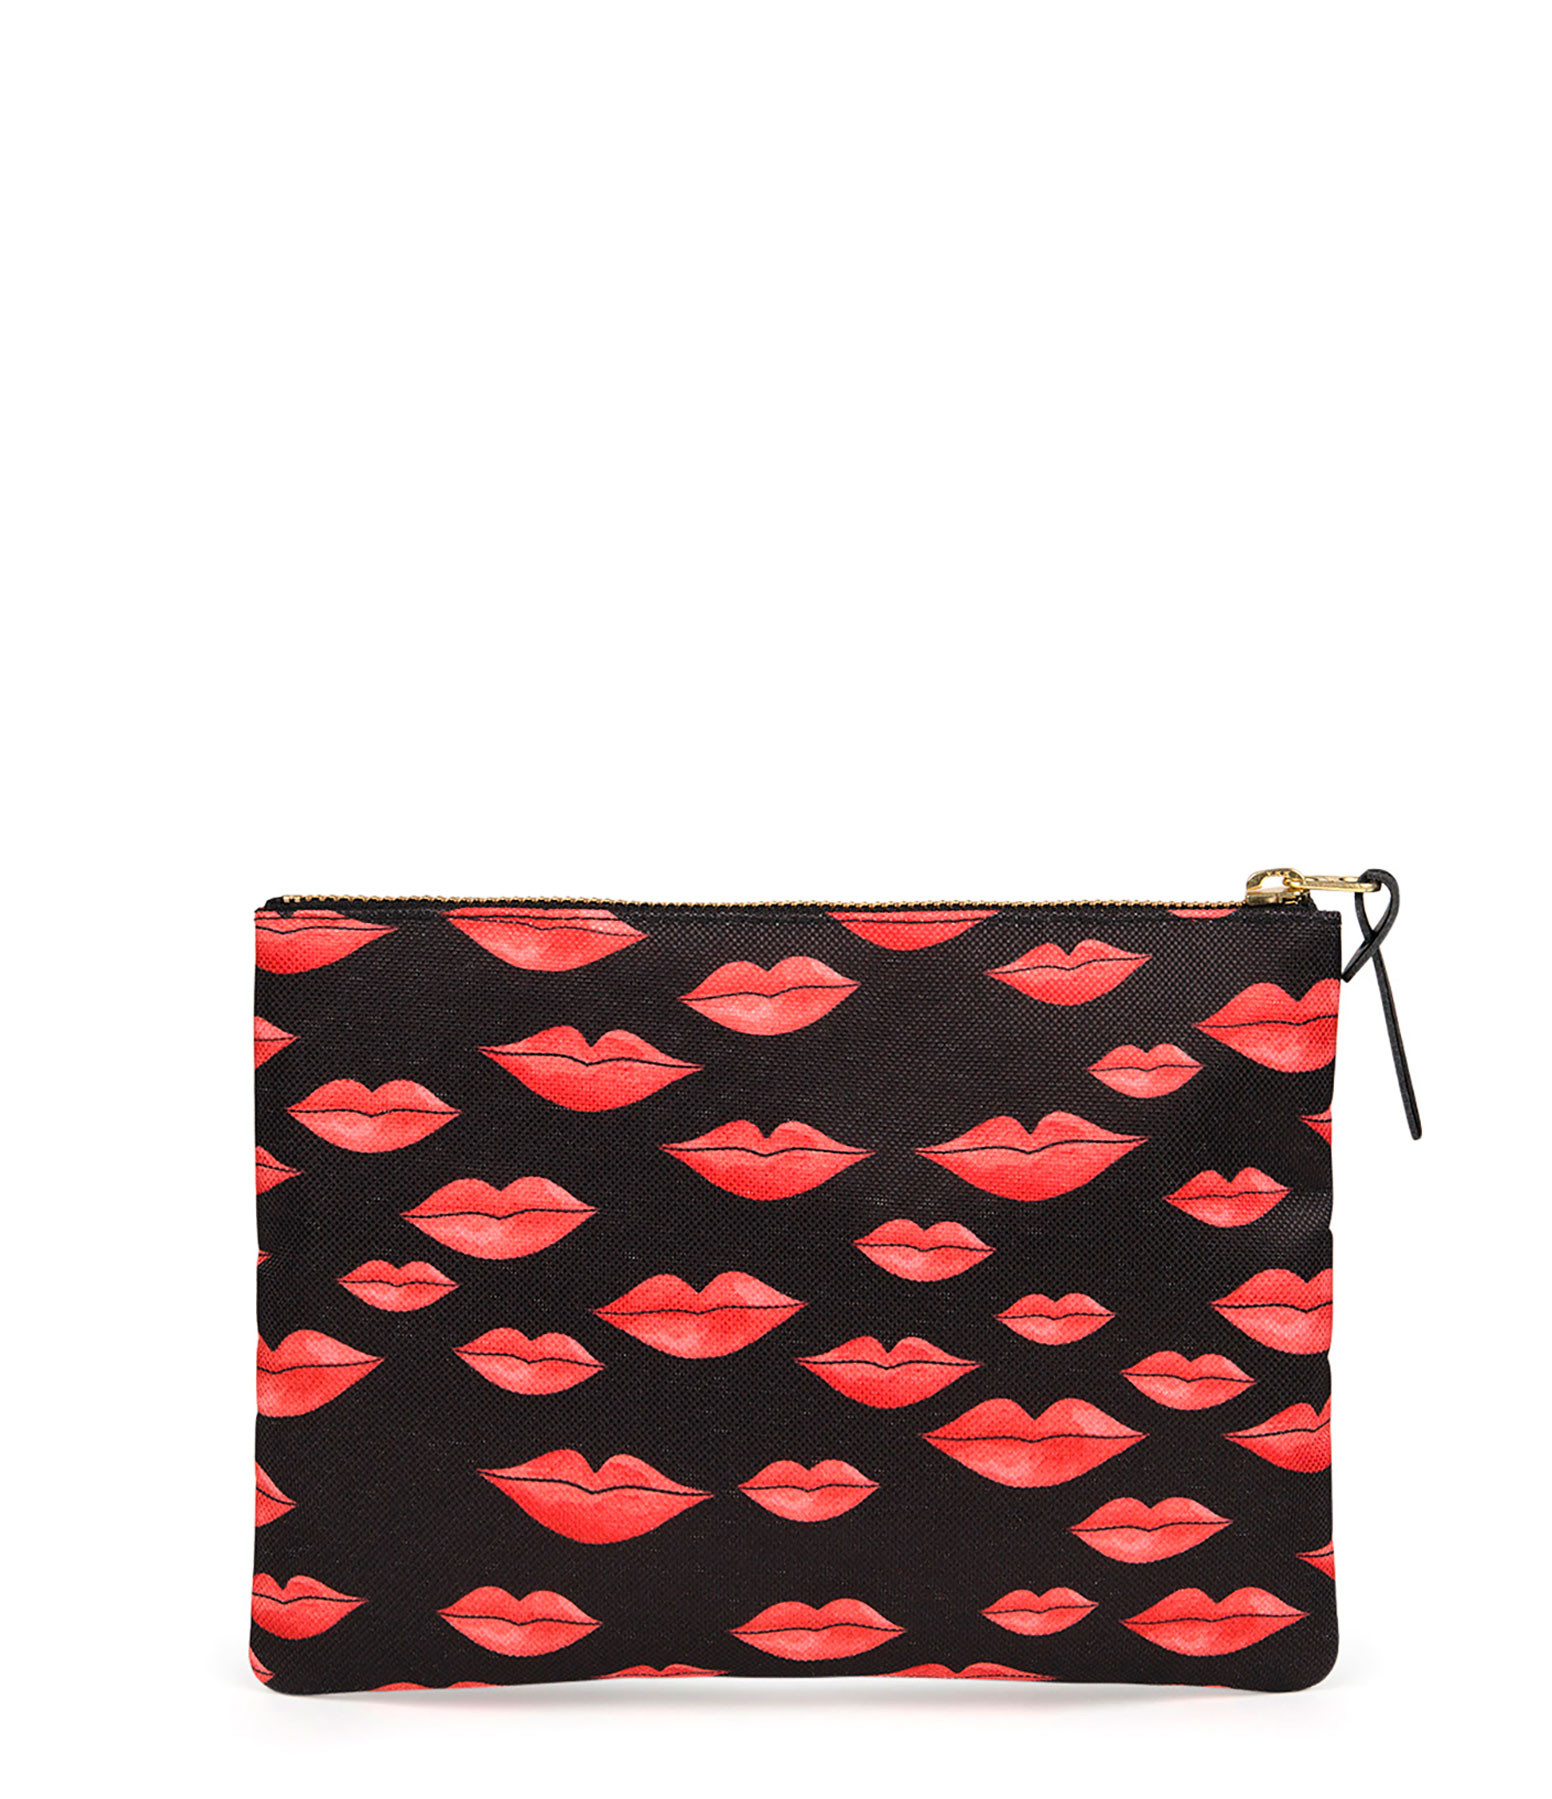 WOUF - Trousse L Beso